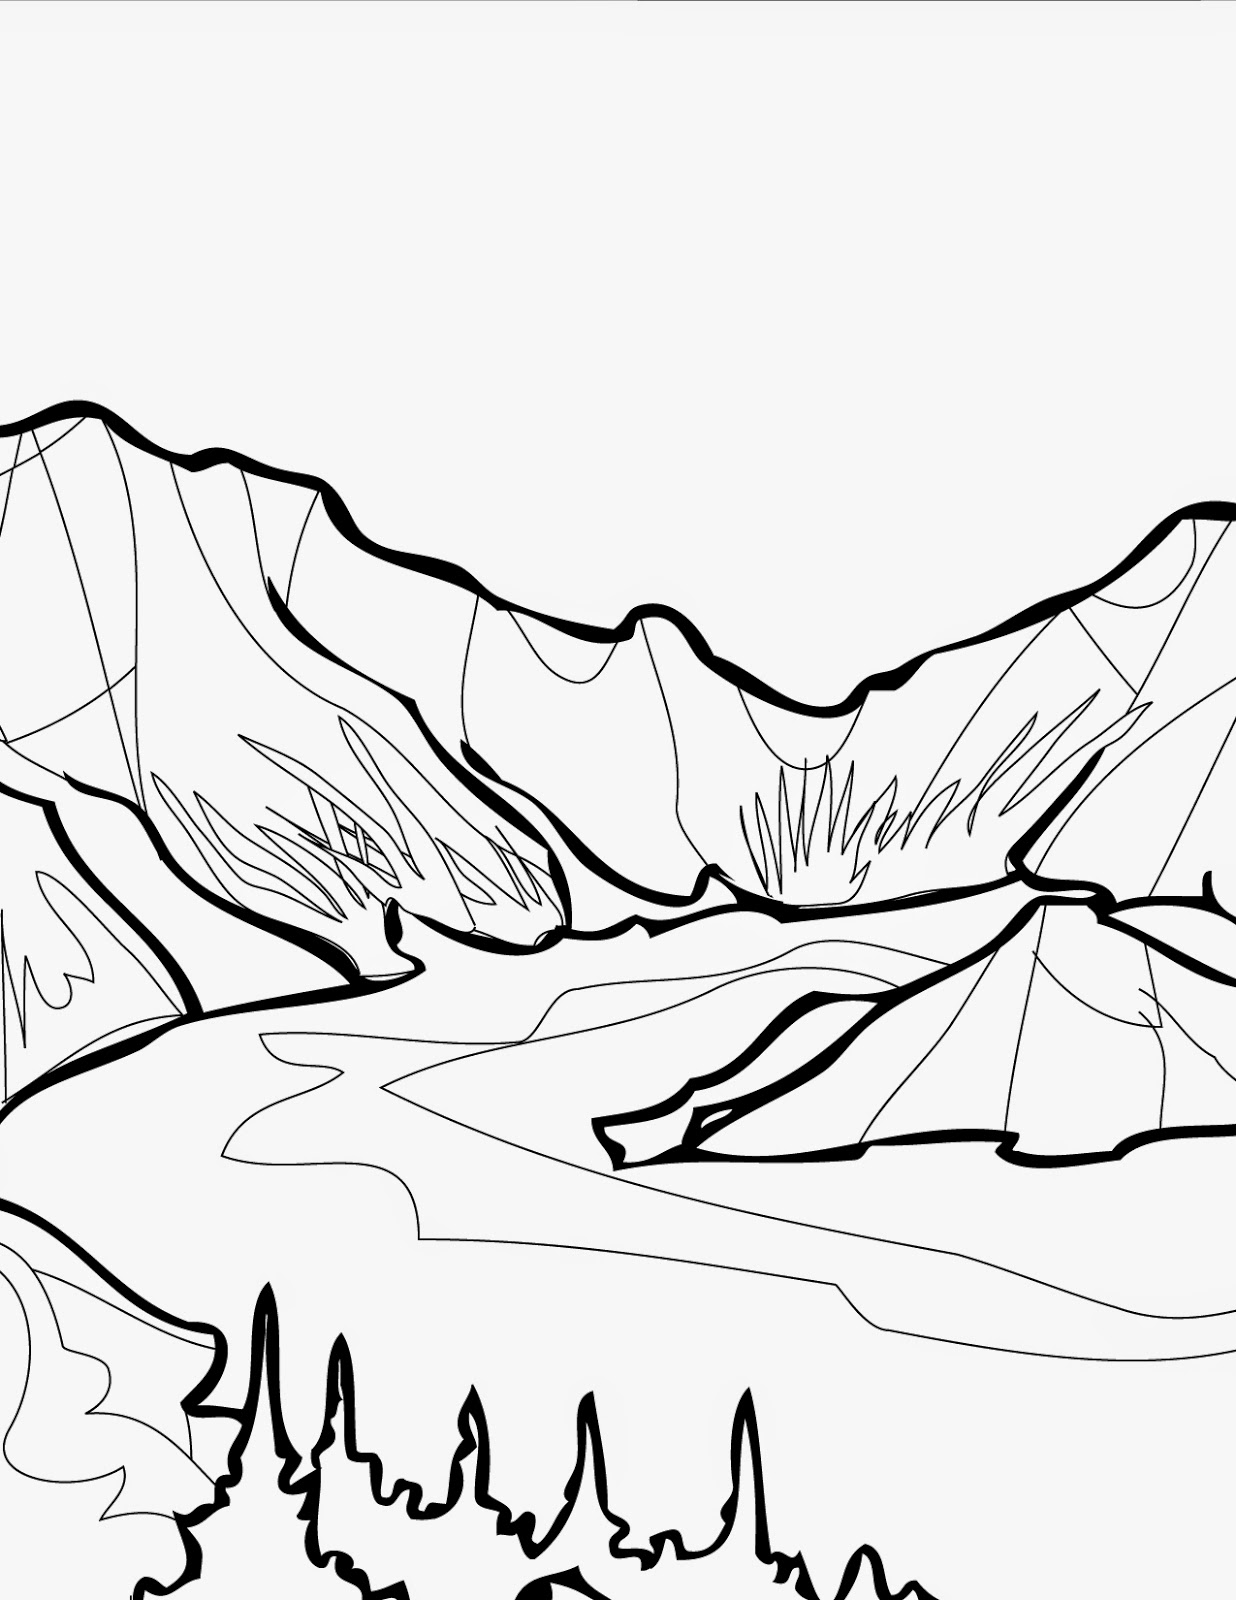 coloring pages on lake - photo#16